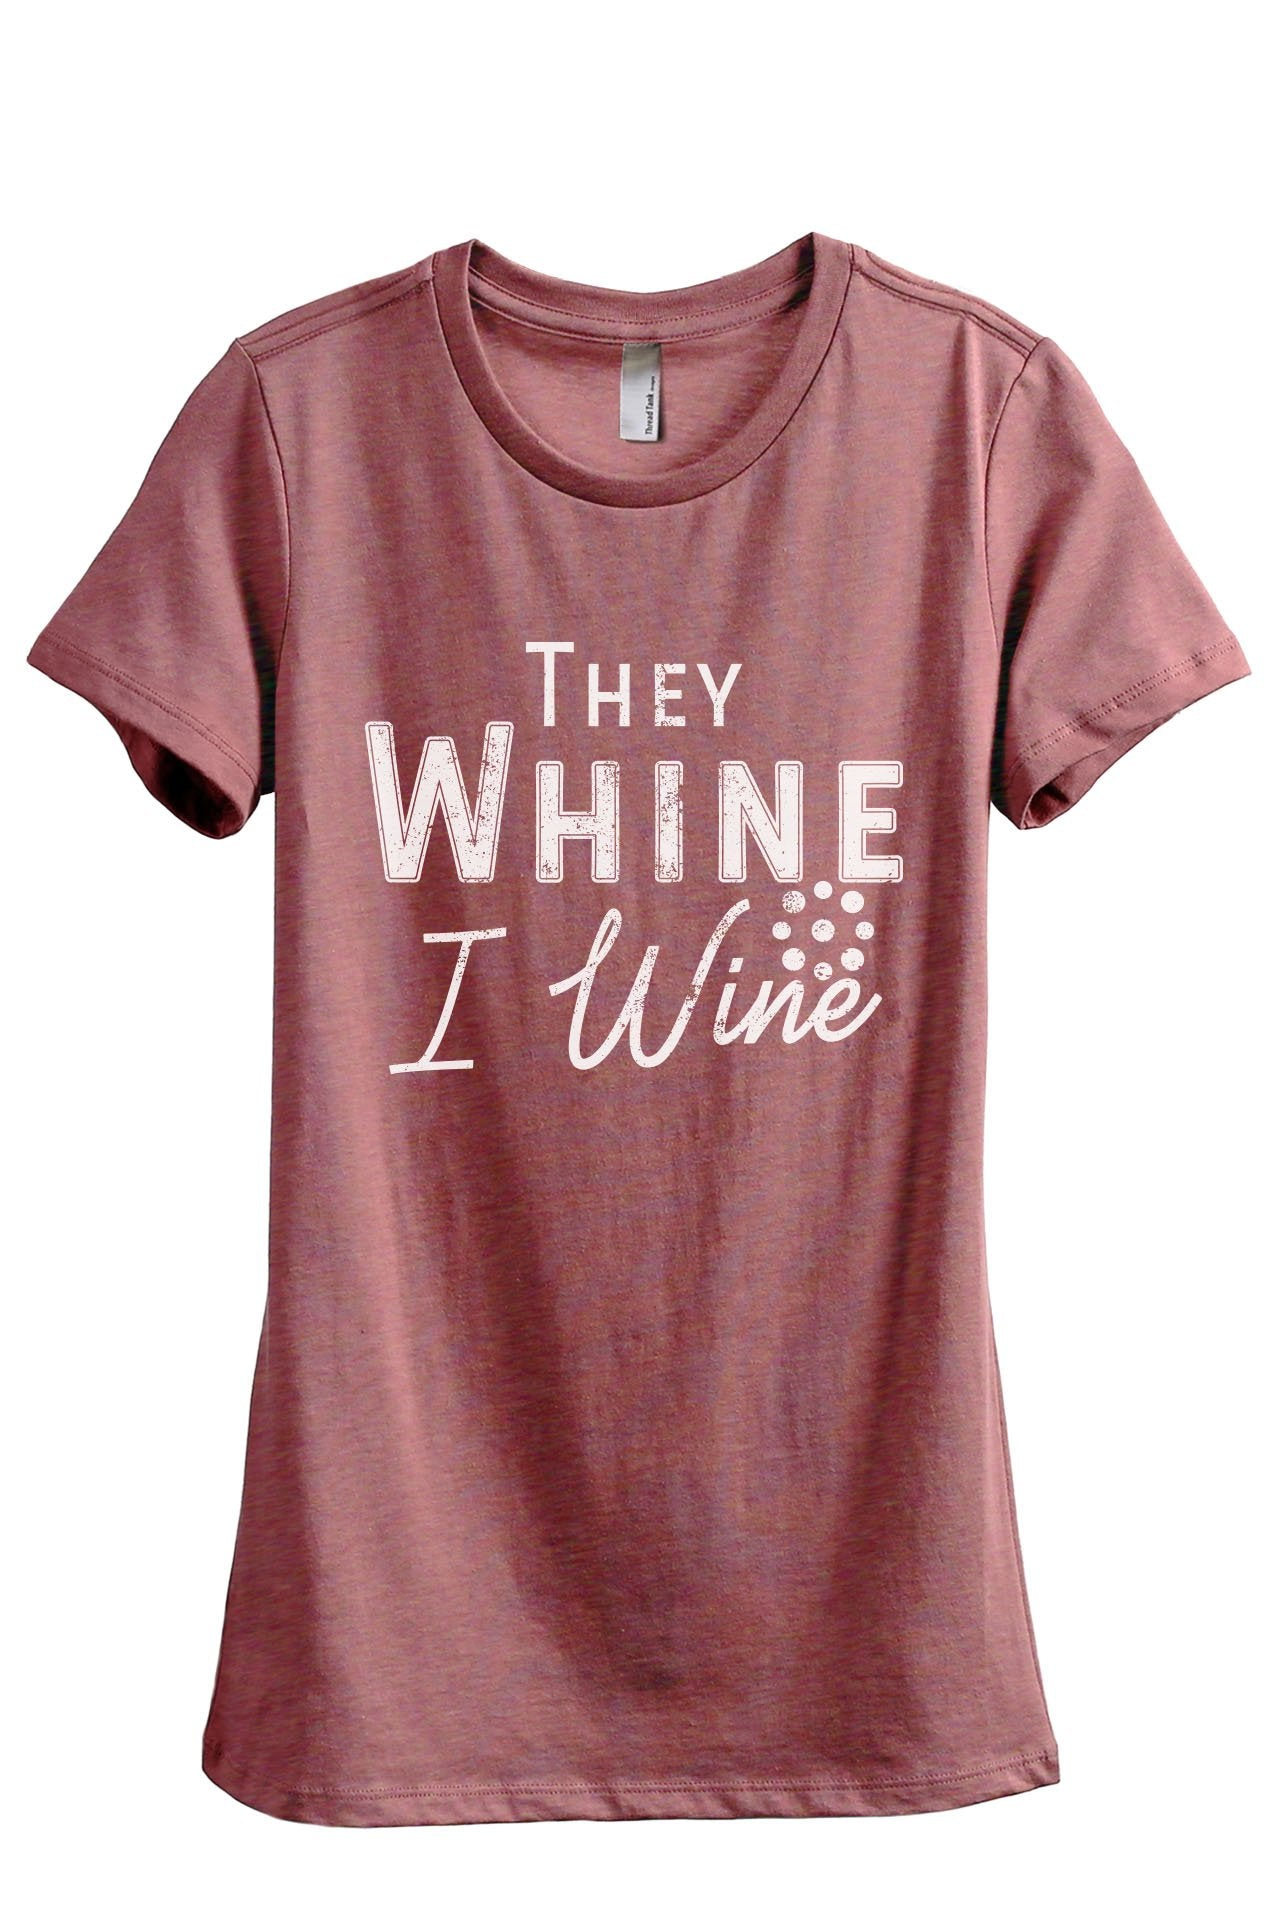 They Whine I Wine Women's Relaxed Crewneck T-Shirt Top Tee Heather Rouge